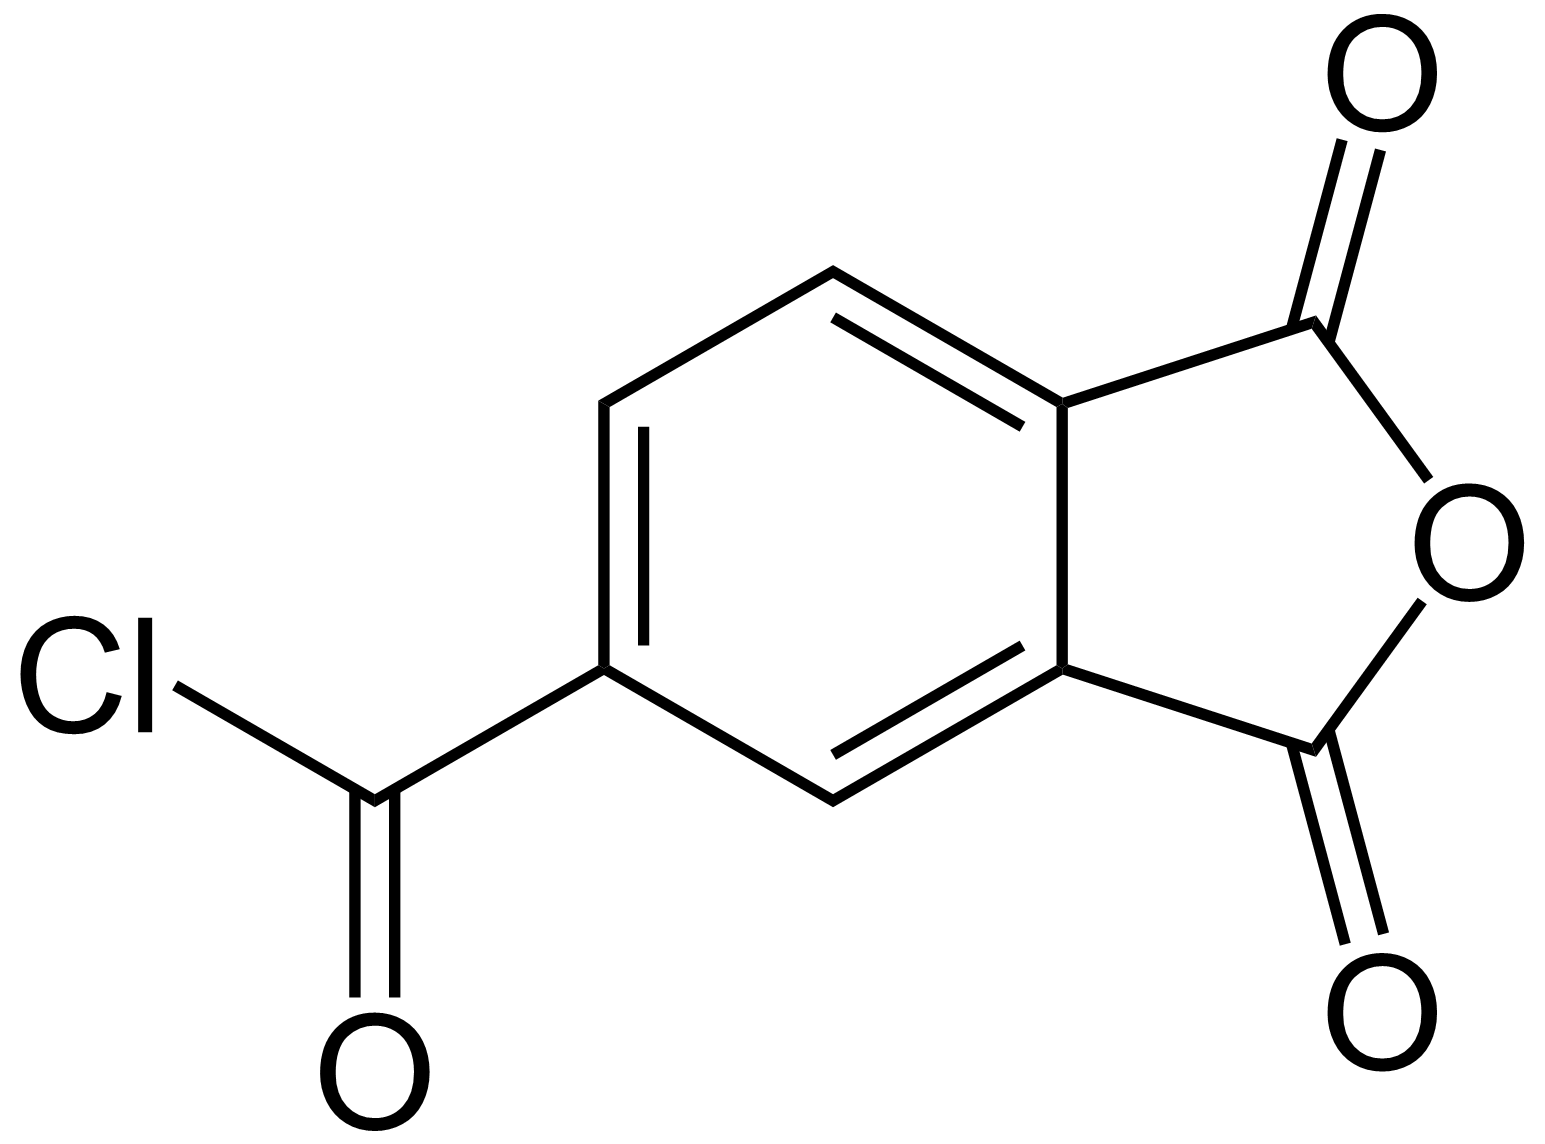 Trimellitic anhydride chloride - Wikipedia